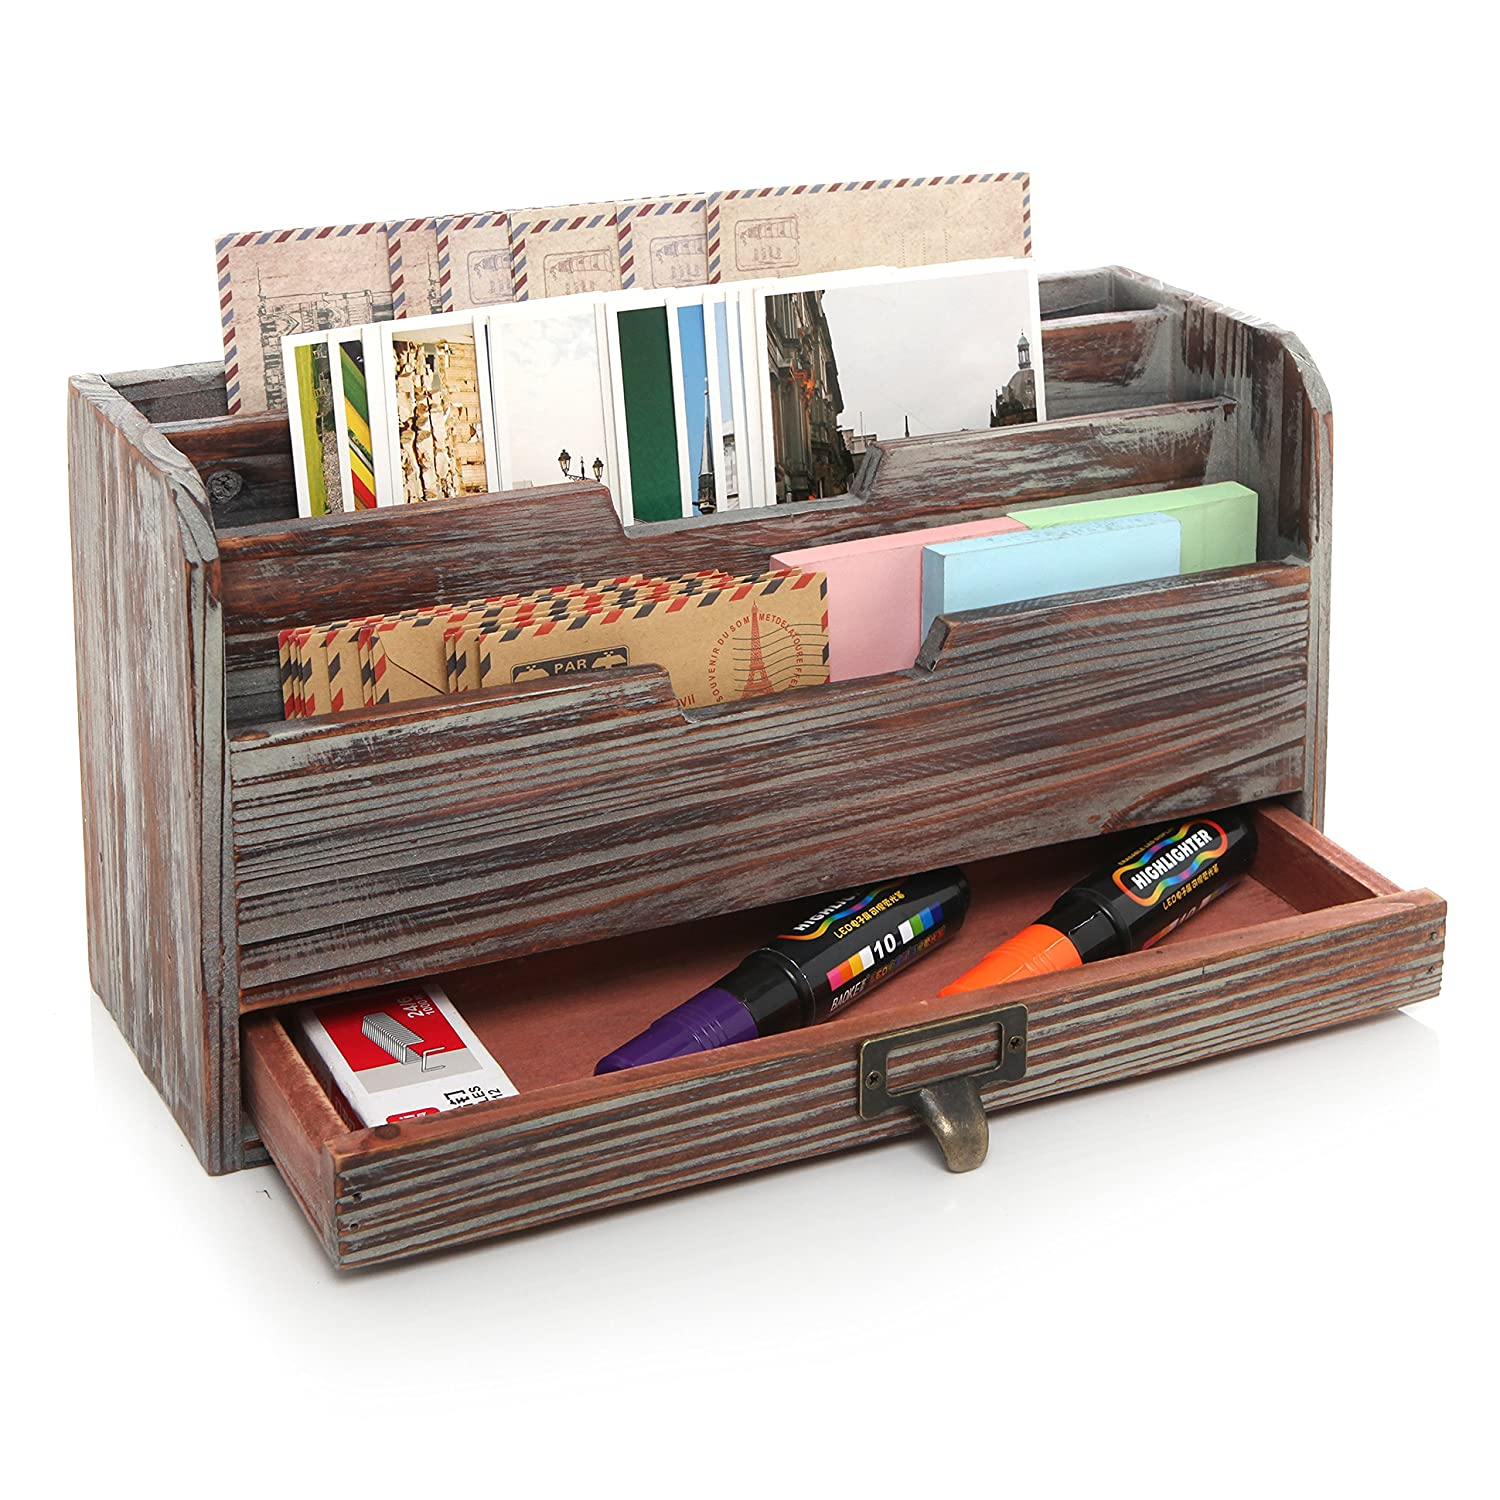 3 Tier Country Rustic Torched Wood Office Desk File Organizer Mail Sorter  Tray Holder W/